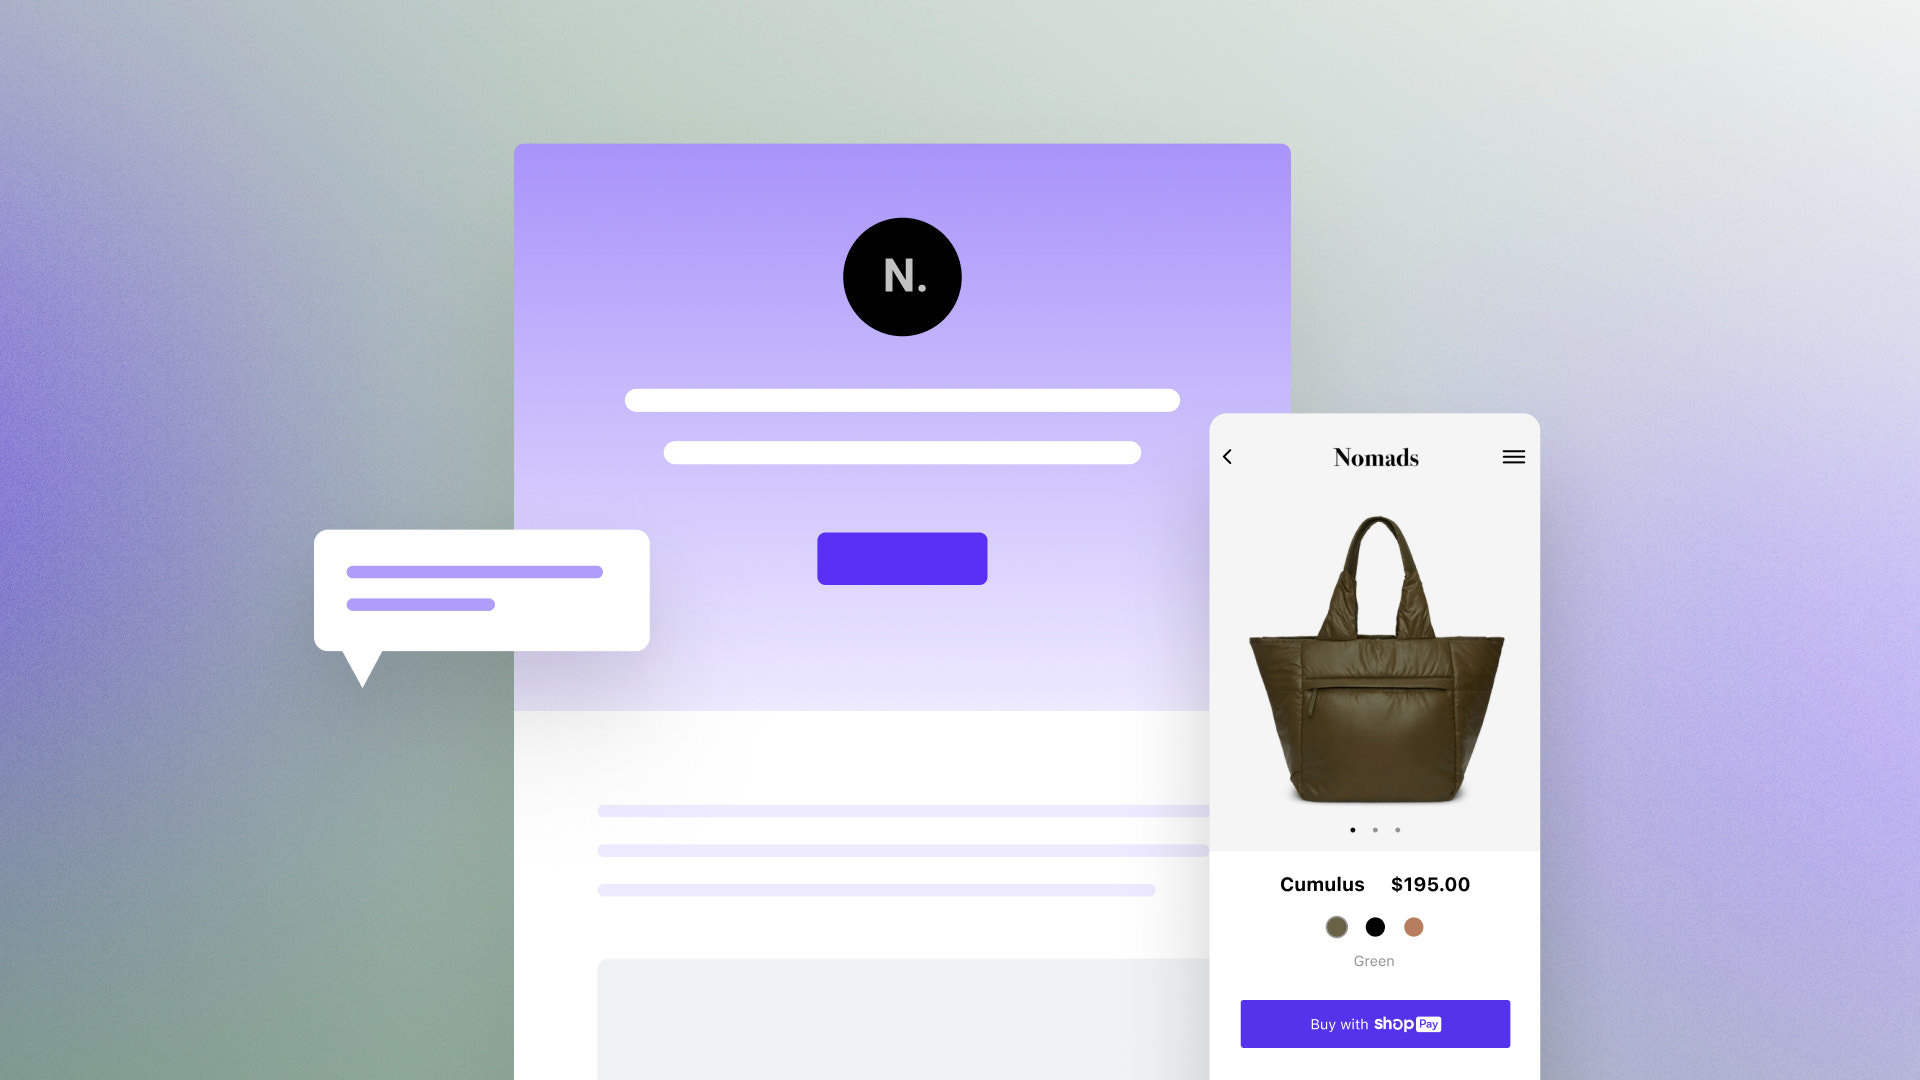 Product layout with image of a purse from the Shop app